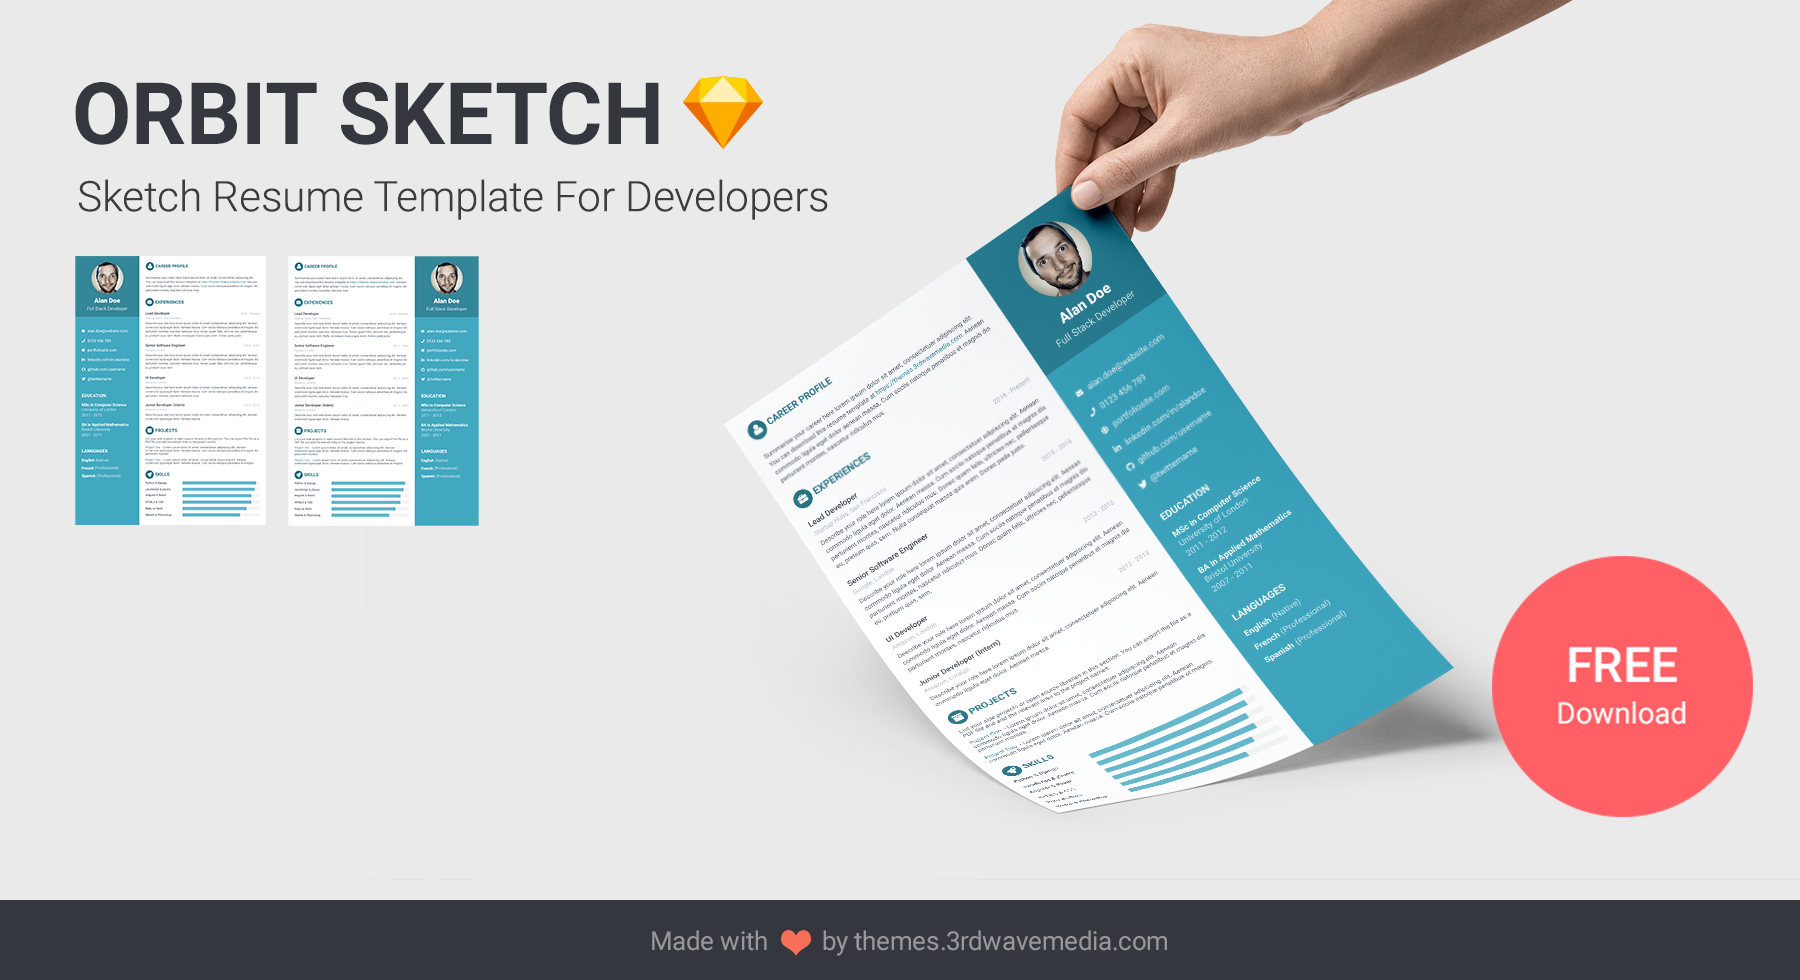 Orbit Sketch Resume Template For Developers